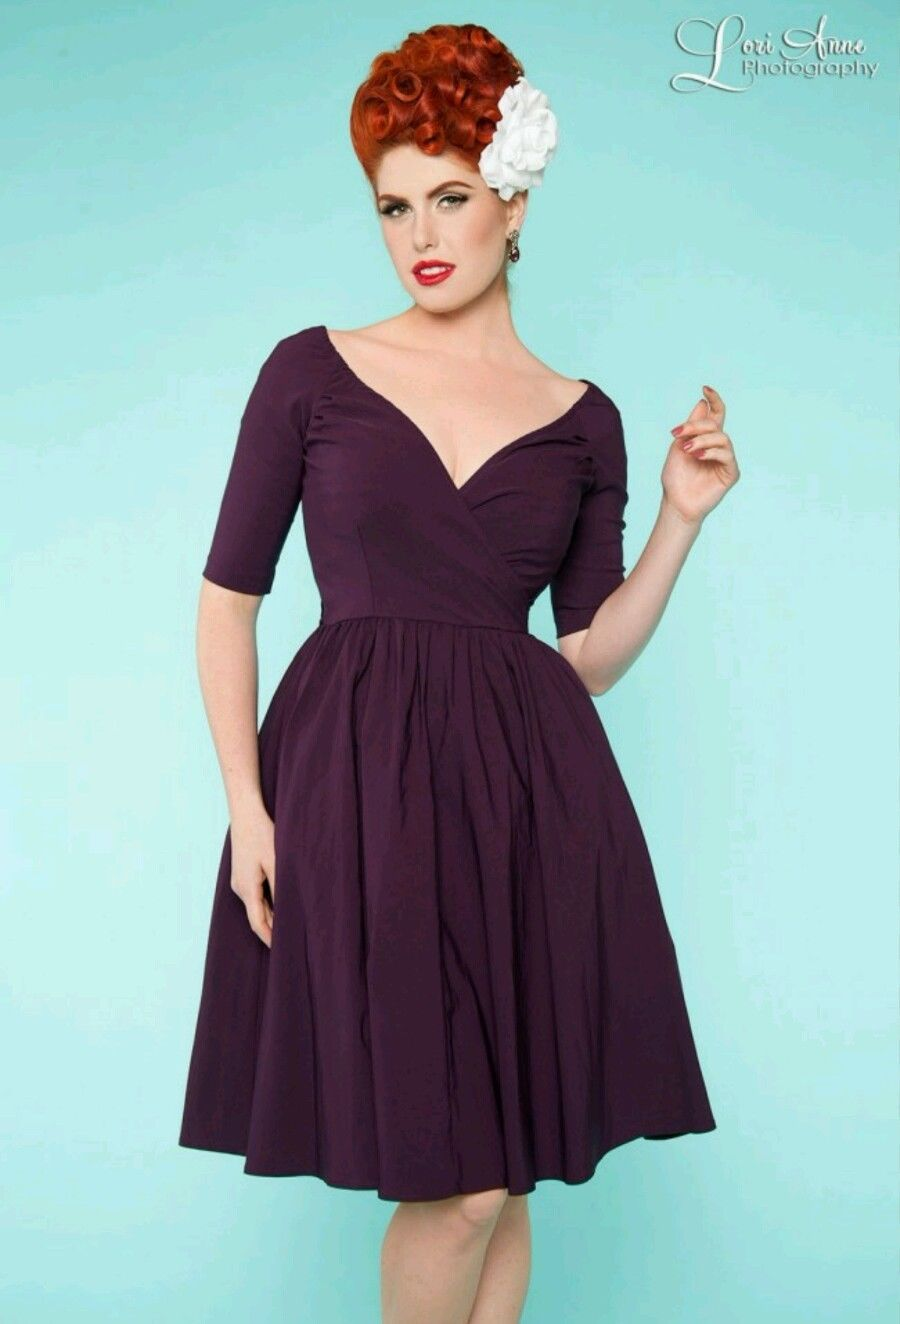 Loren Dress in Plum Pin Up Girl Clothing | eBay | Pin up <3 | Pinterest